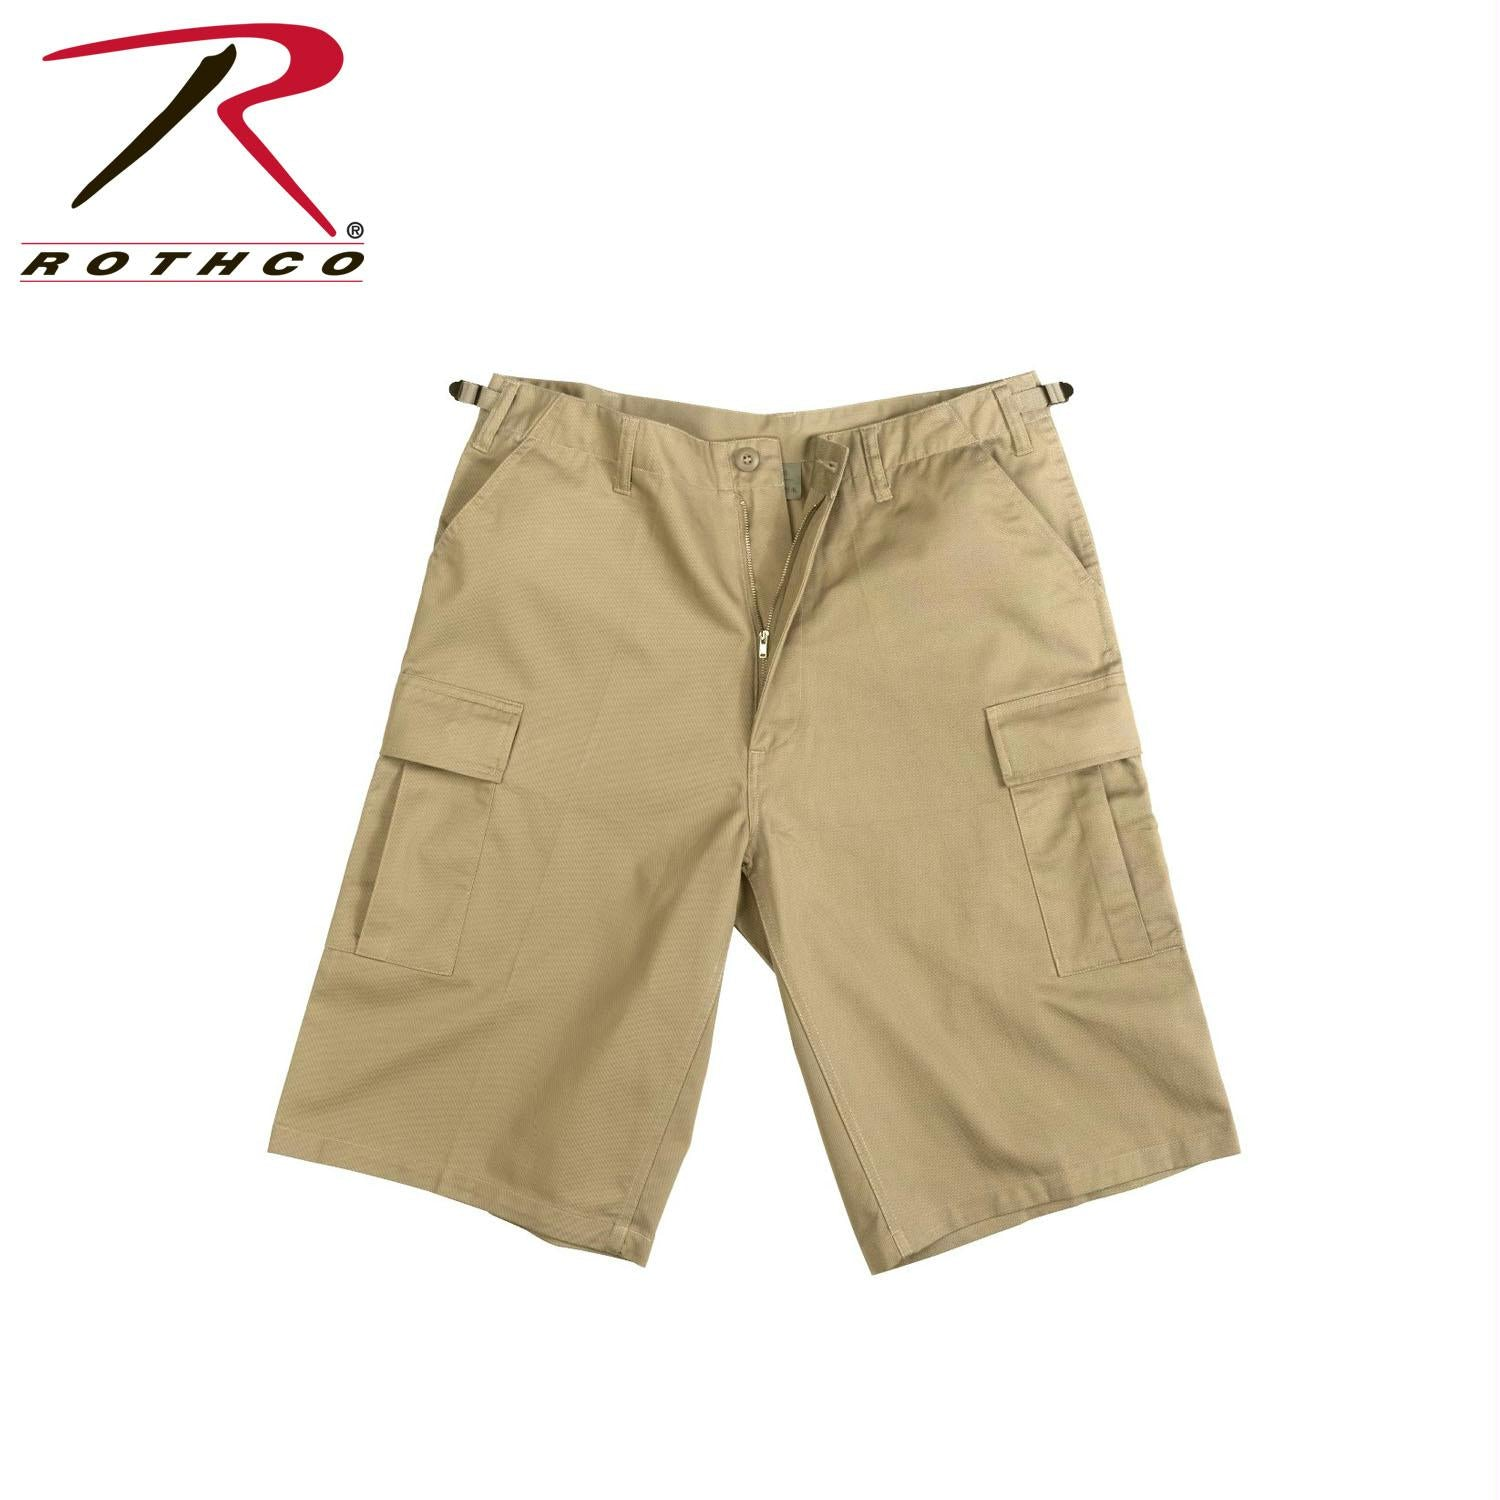 Rothco Long Length BDU Short - Khaki / M